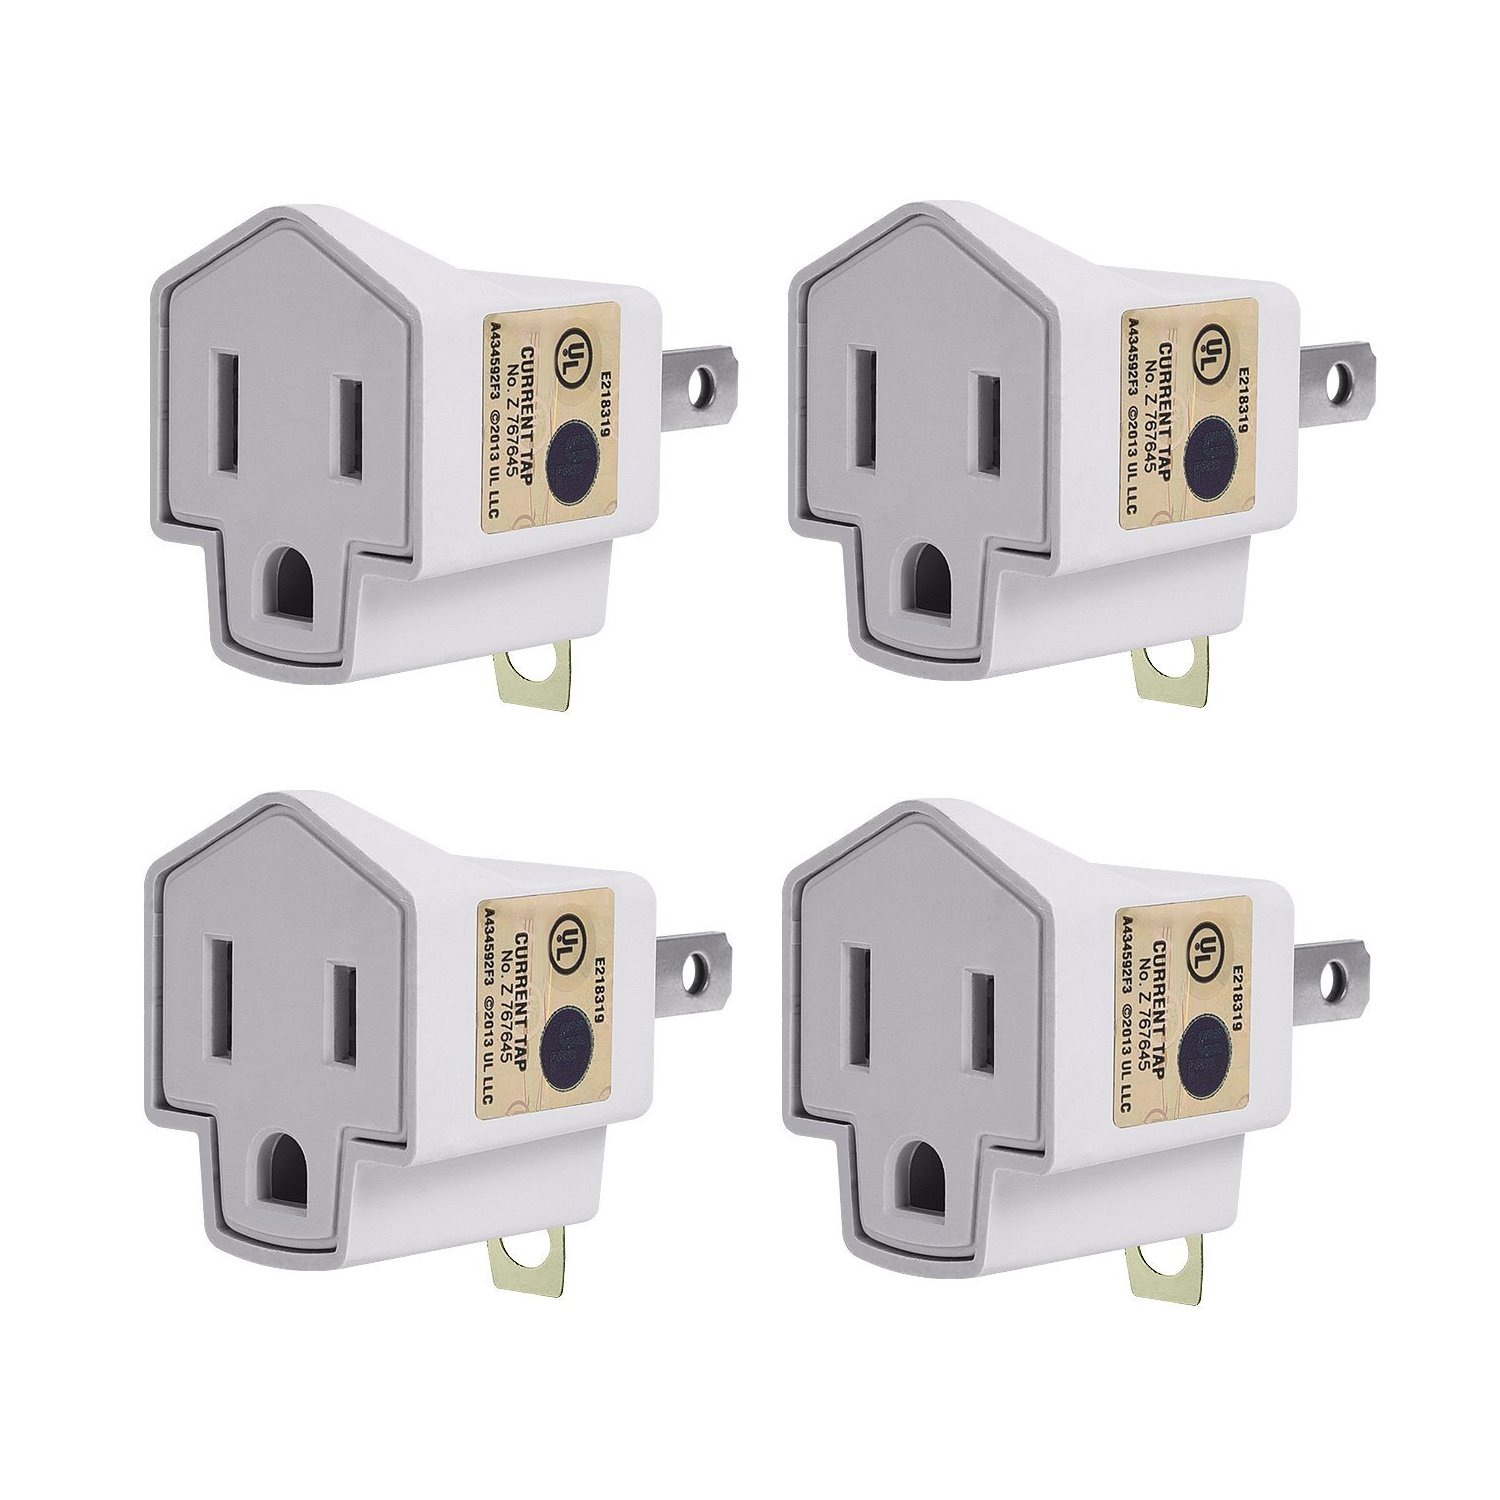 3-2 Prong Adapters Grounding Adapter UL Listed-JACKYLED 3-Prong to 2-Prong Adapter Converter Fireproof Material 200? Resistant Heavy Duty Wall Outlets Plugs for Household Appliances Industrial- 4 pack